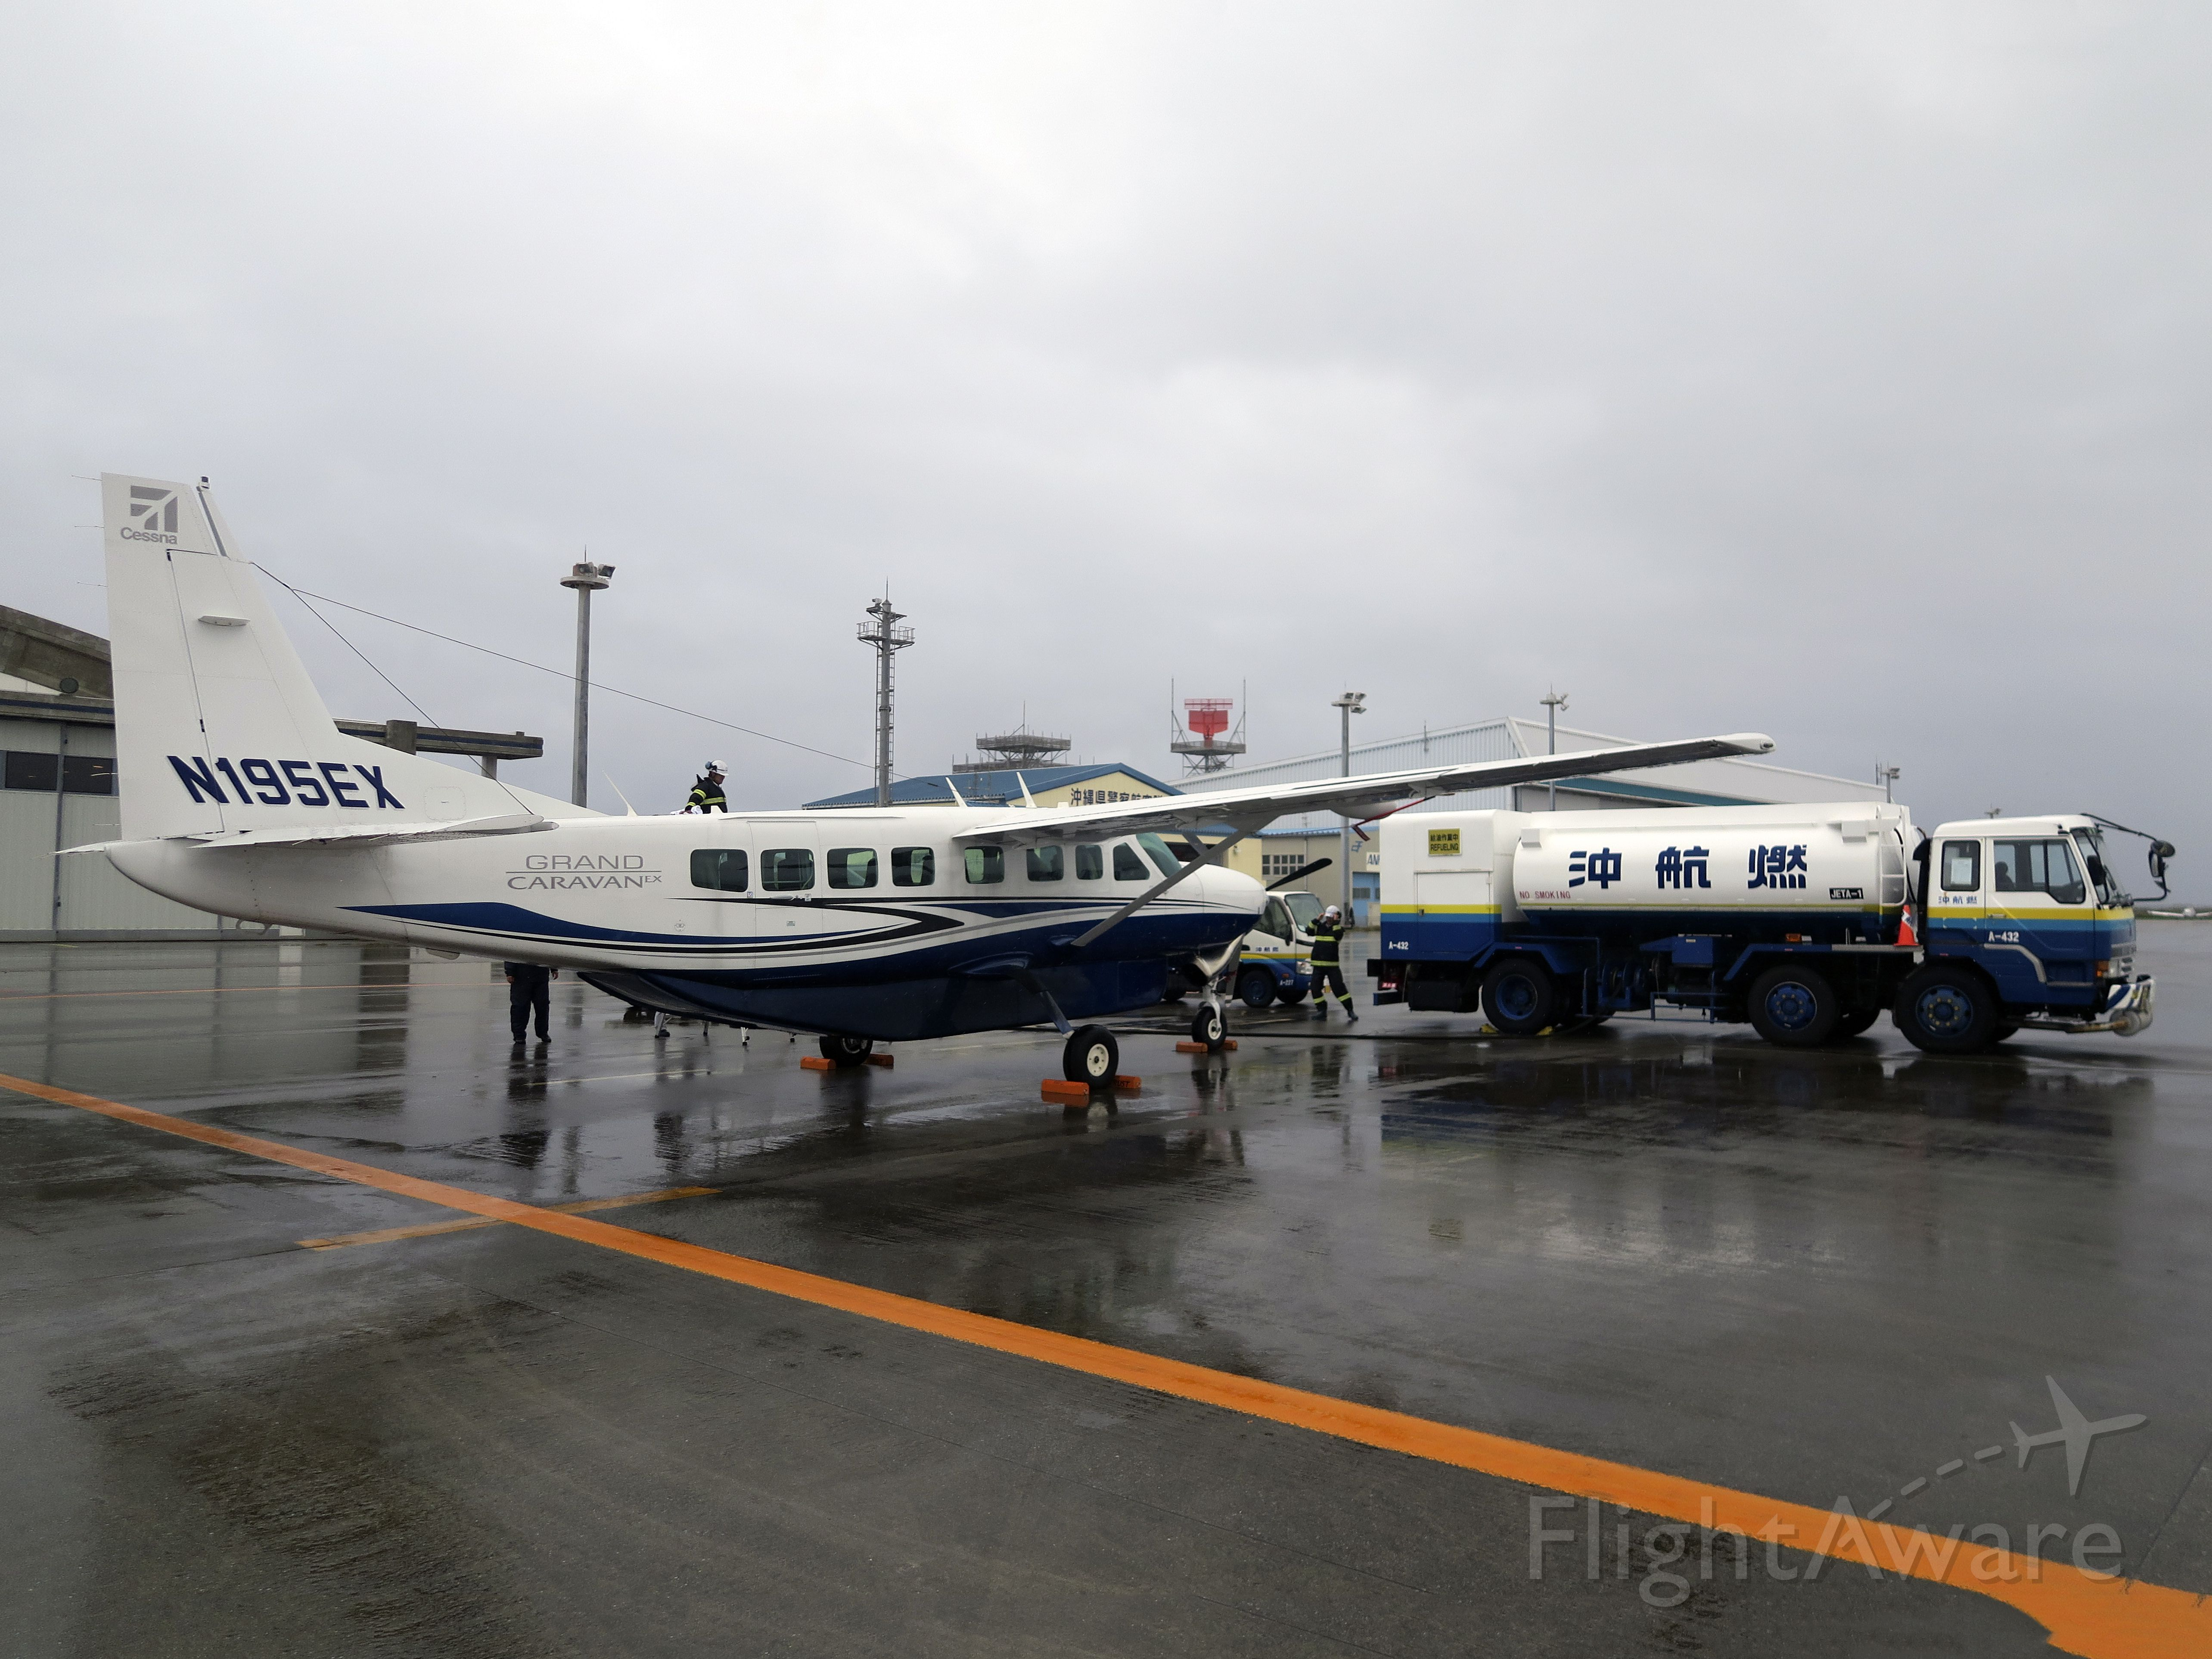 Cessna Caravan (N195EX) - On a ferry flight from Singapore to the USA.